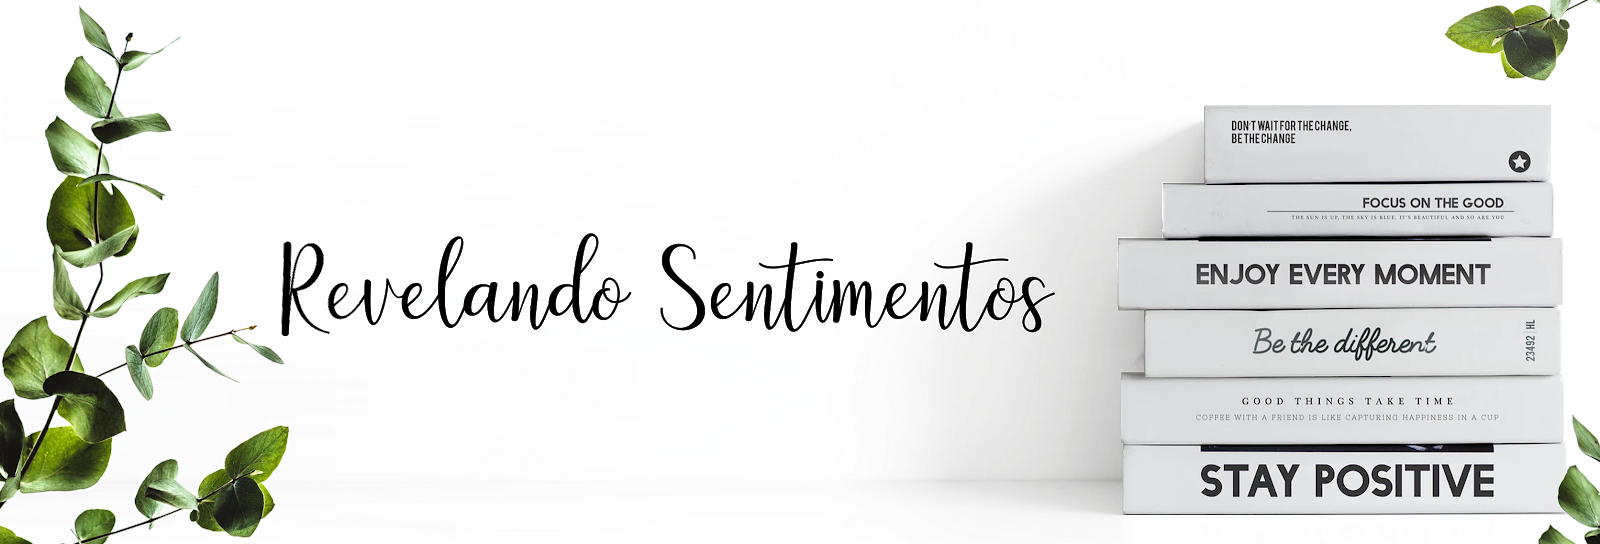 Revelando Sentimentos | Resenhas de livros